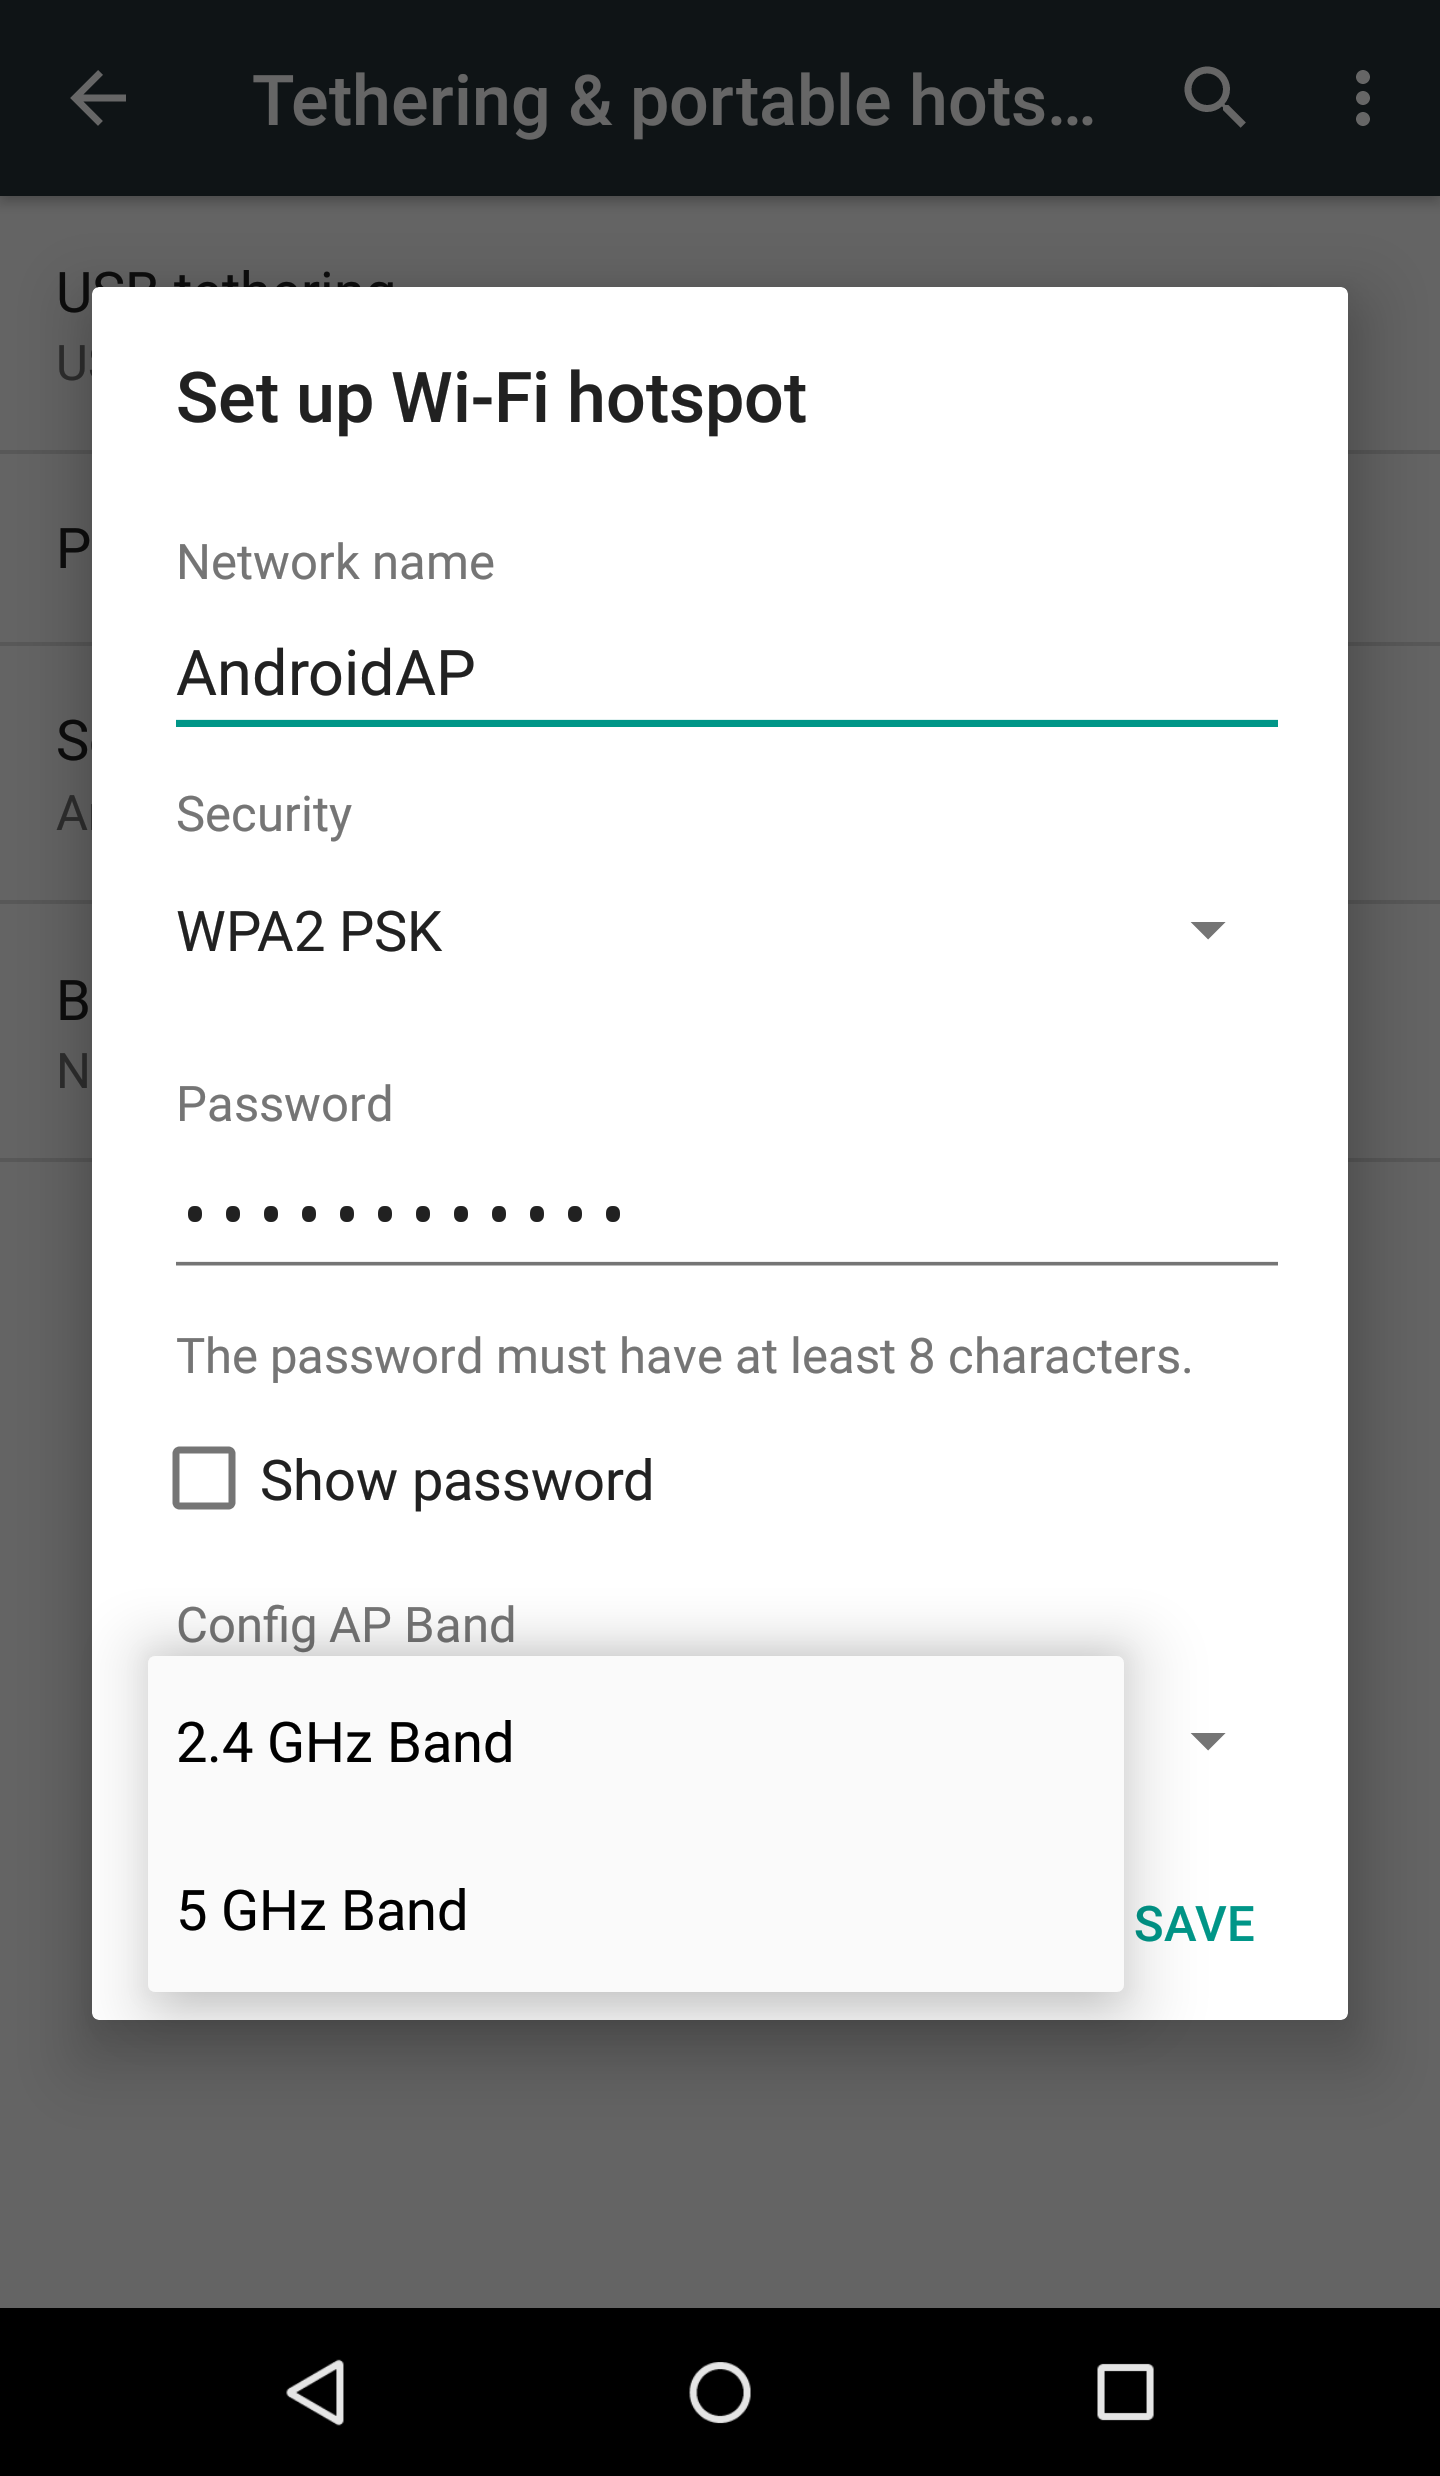 Android Hotspot 5 GHz